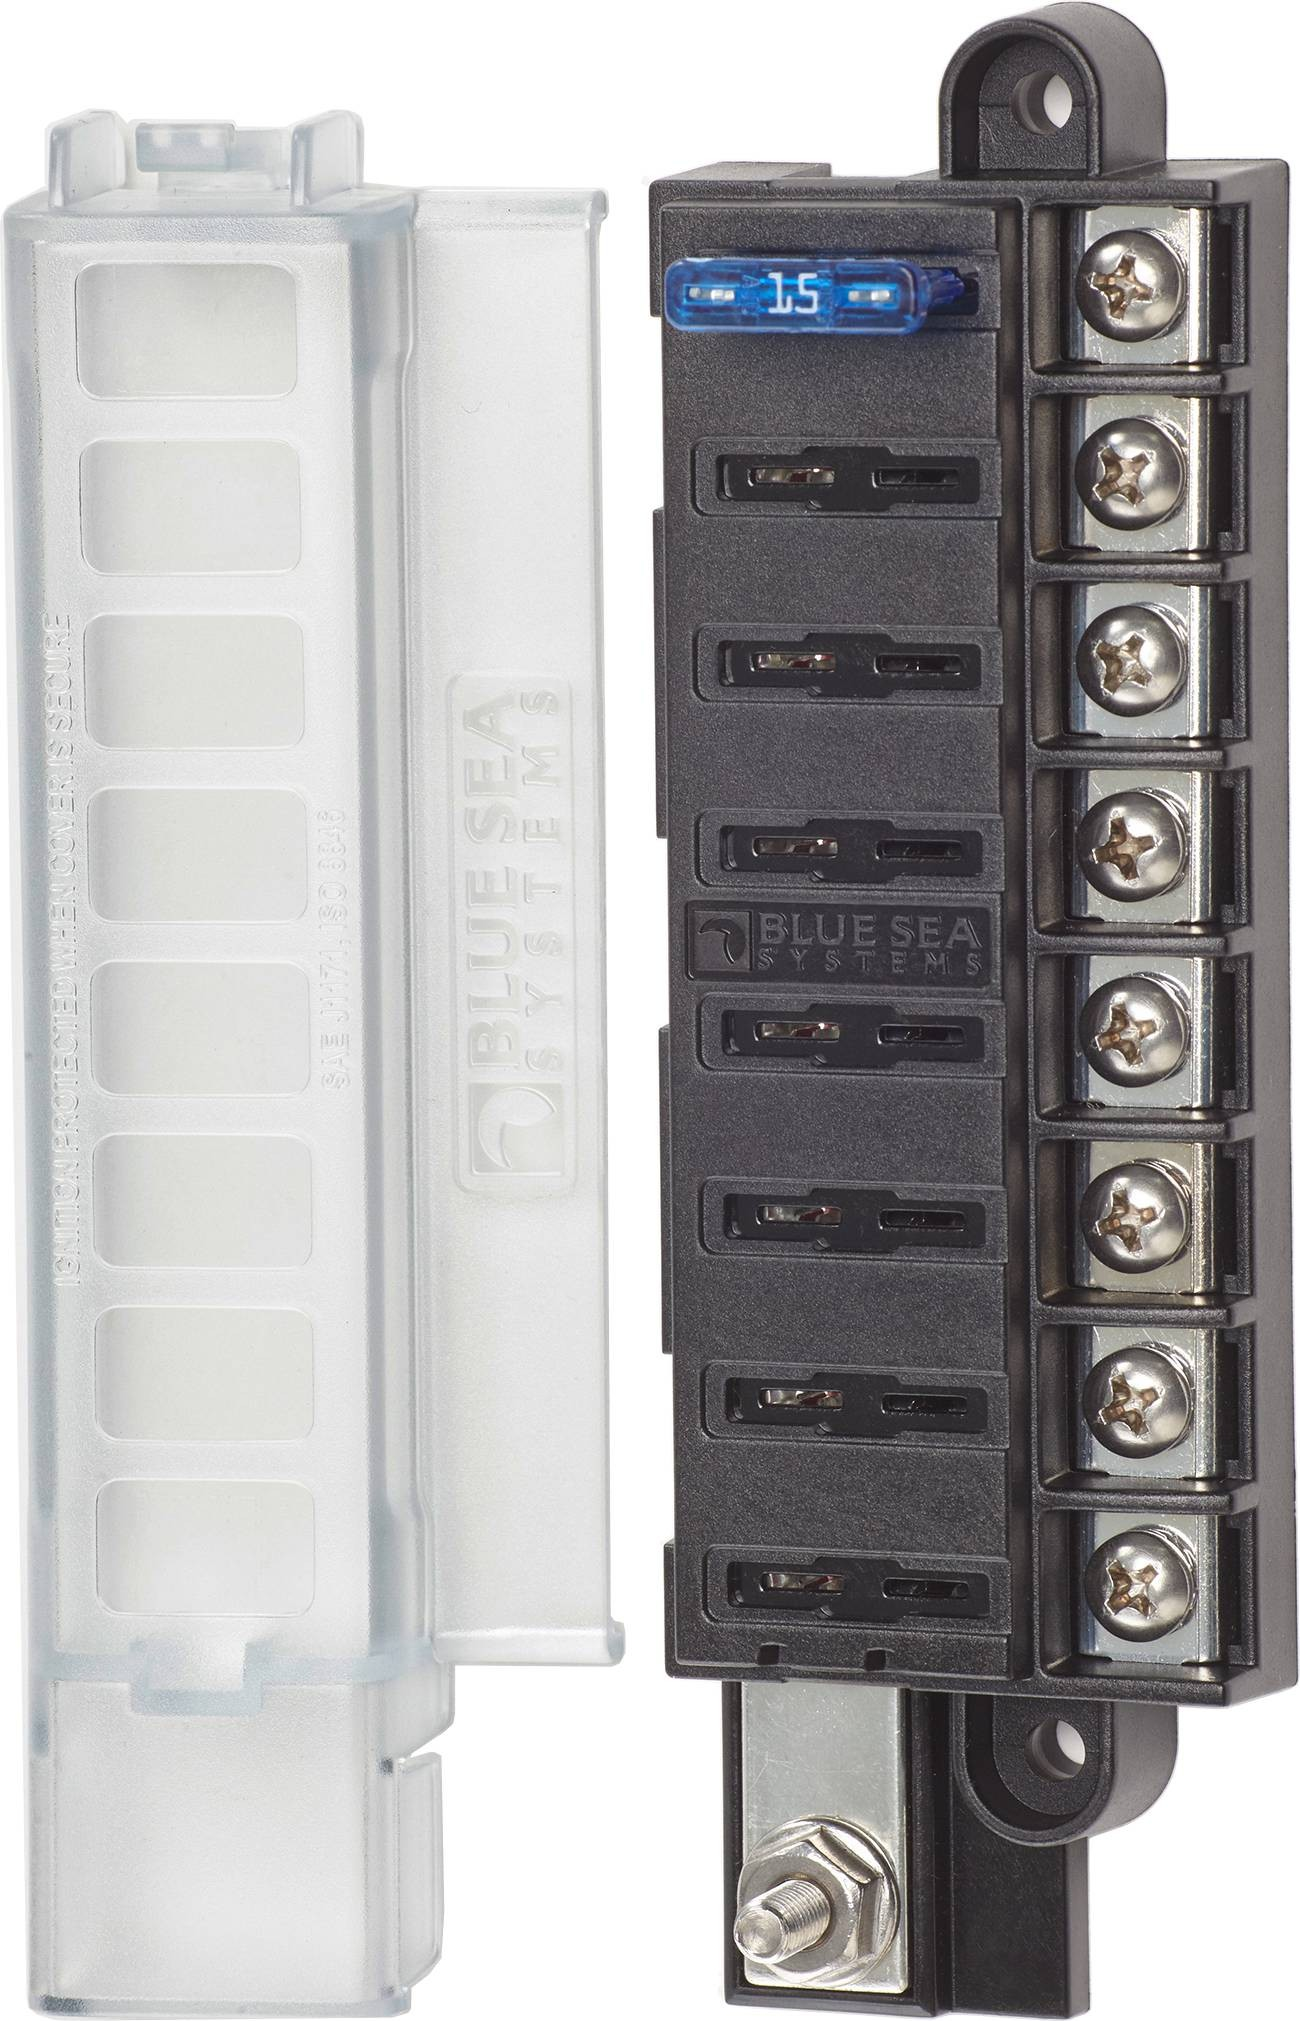 BlueSea fuse box with cover for 8 blade-type fuses